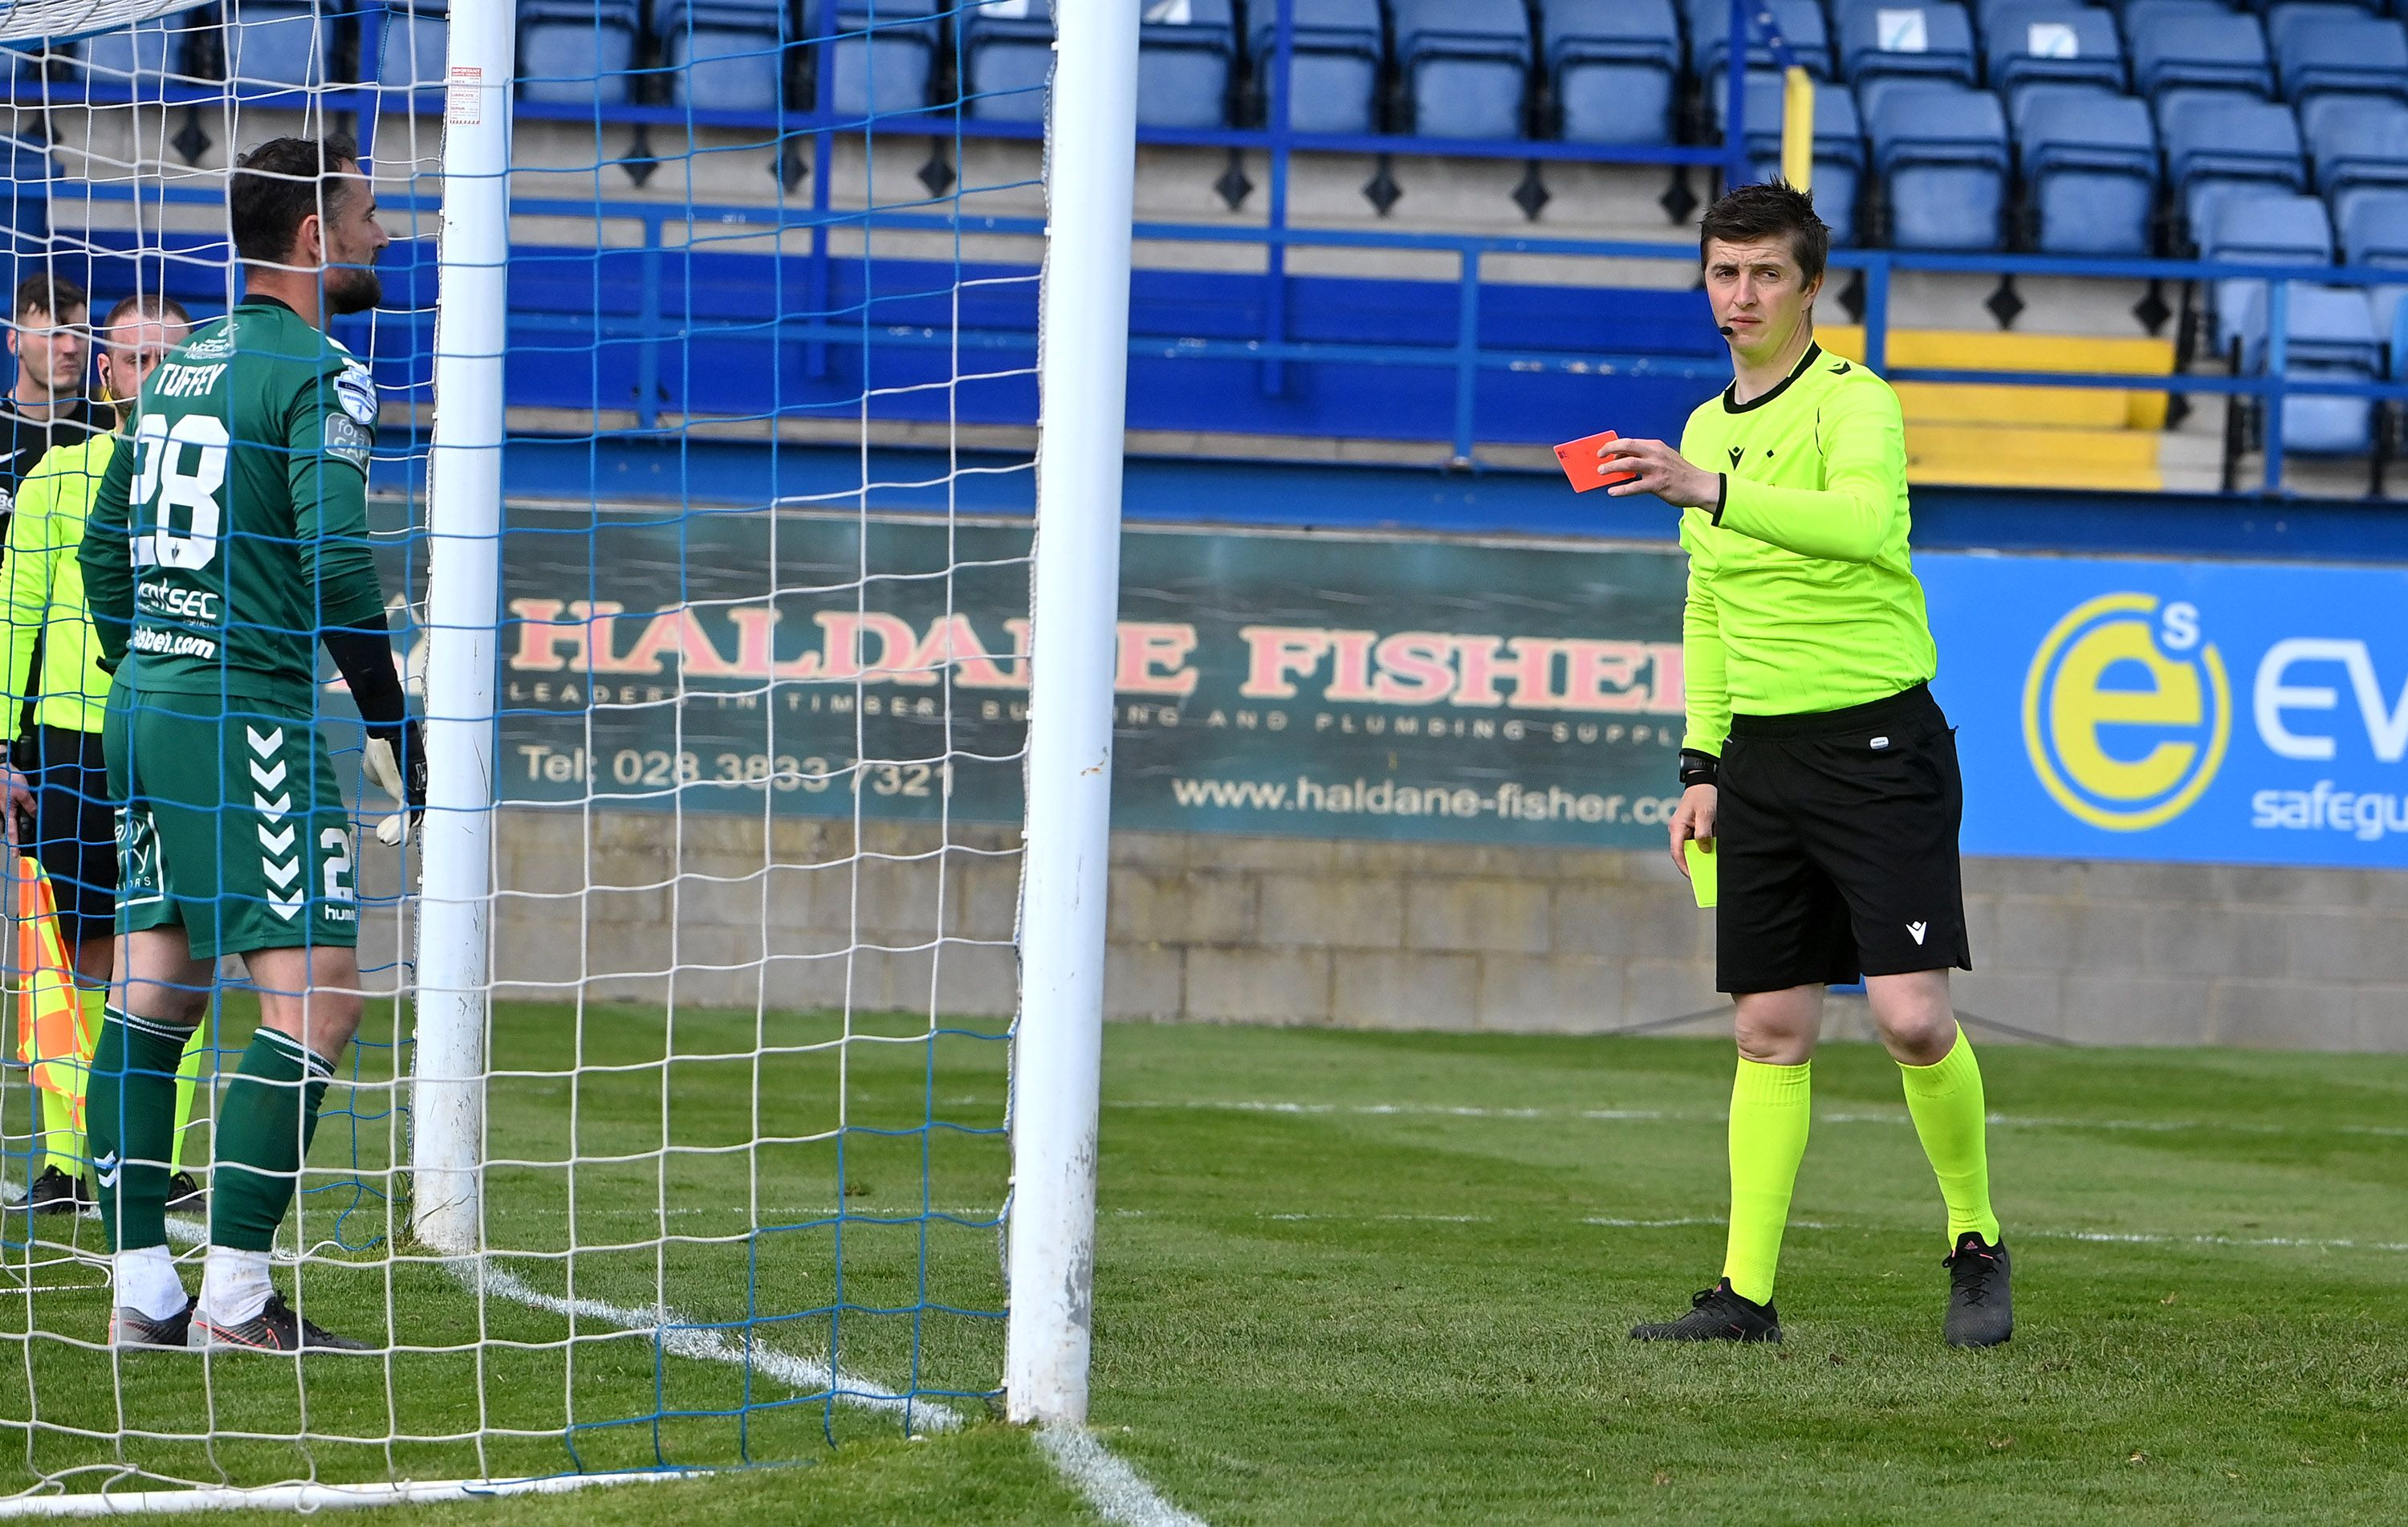 Crusaders goalkeeper Jonny Tuffey is shown a red card during the penalty shootout after stepping off his line for the third time